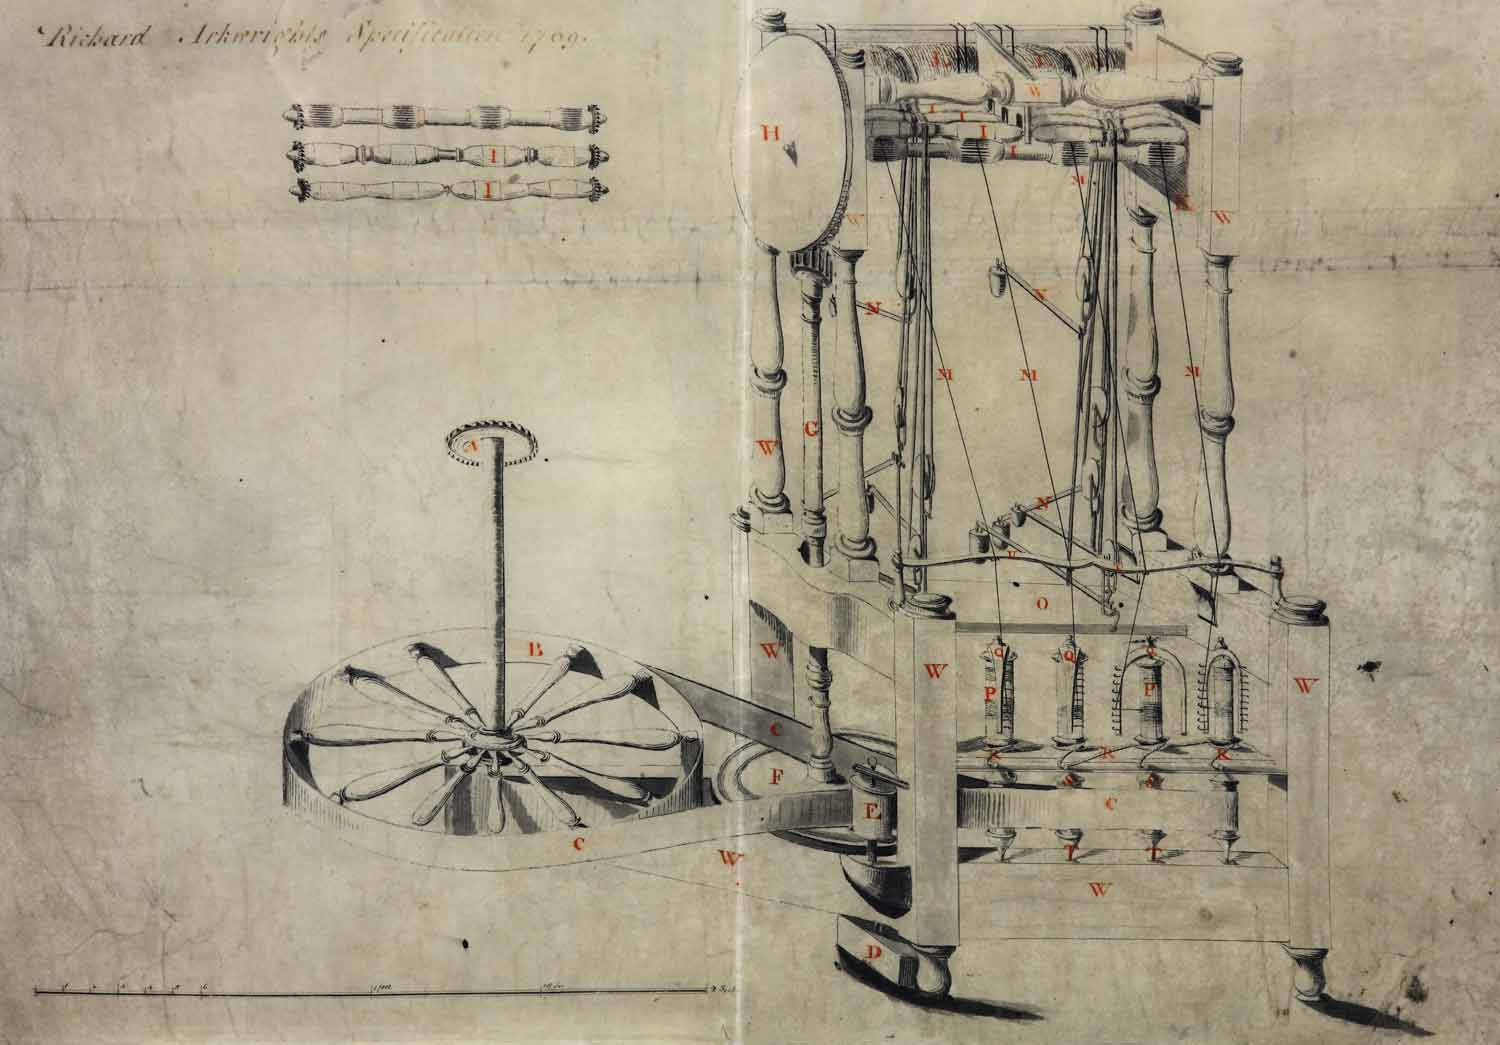 hight resolution of richard arkwright s specification for his spinning frame 1769 c73 13 m31